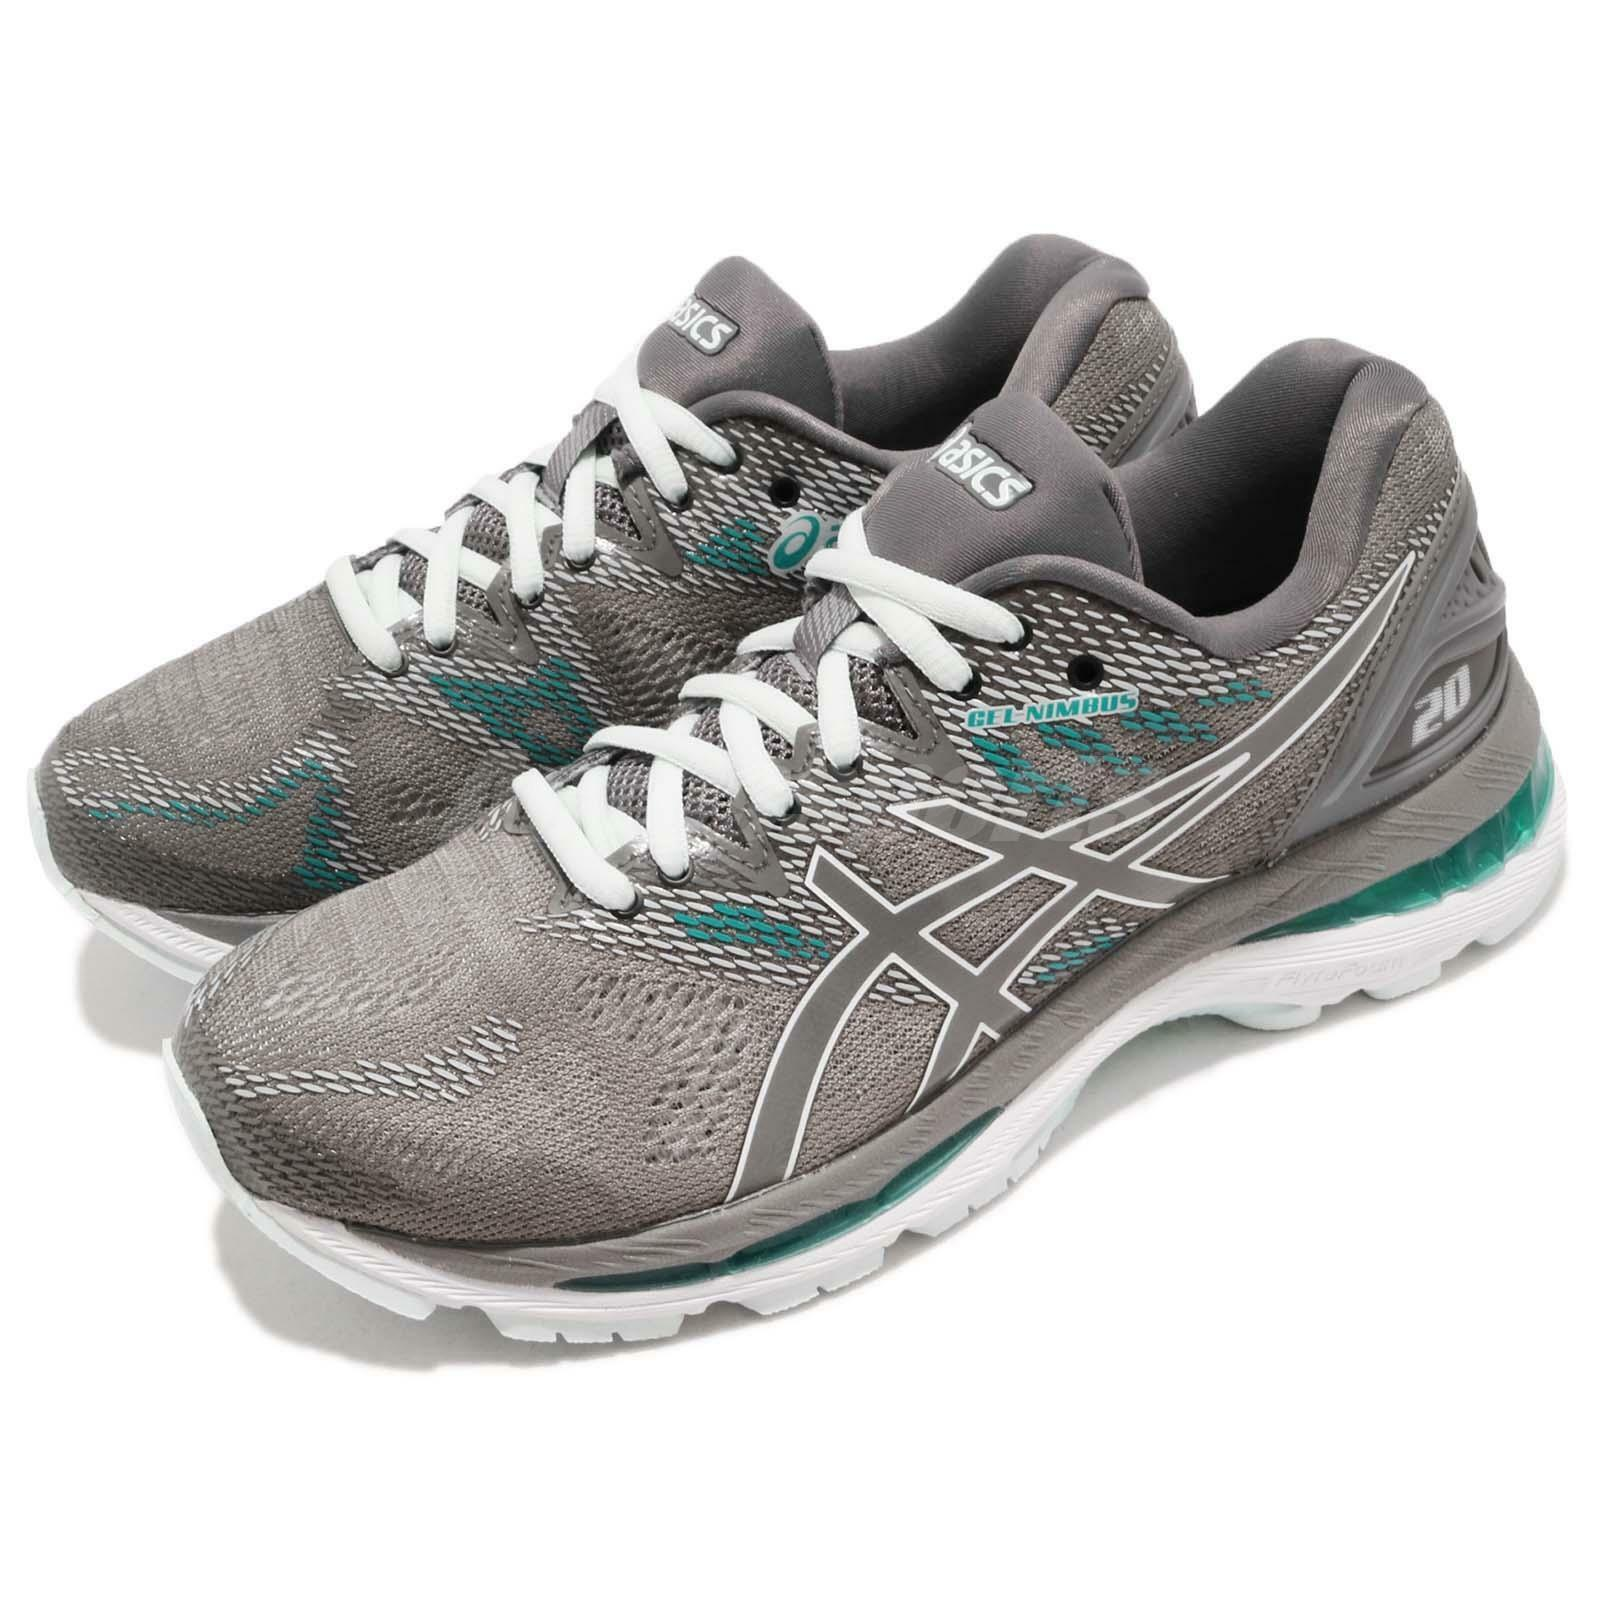 Asics Gel-Nimbus 20 Running D Wide Carbon Grey Green Womens Running 20 Shoes T851N-020 55e284